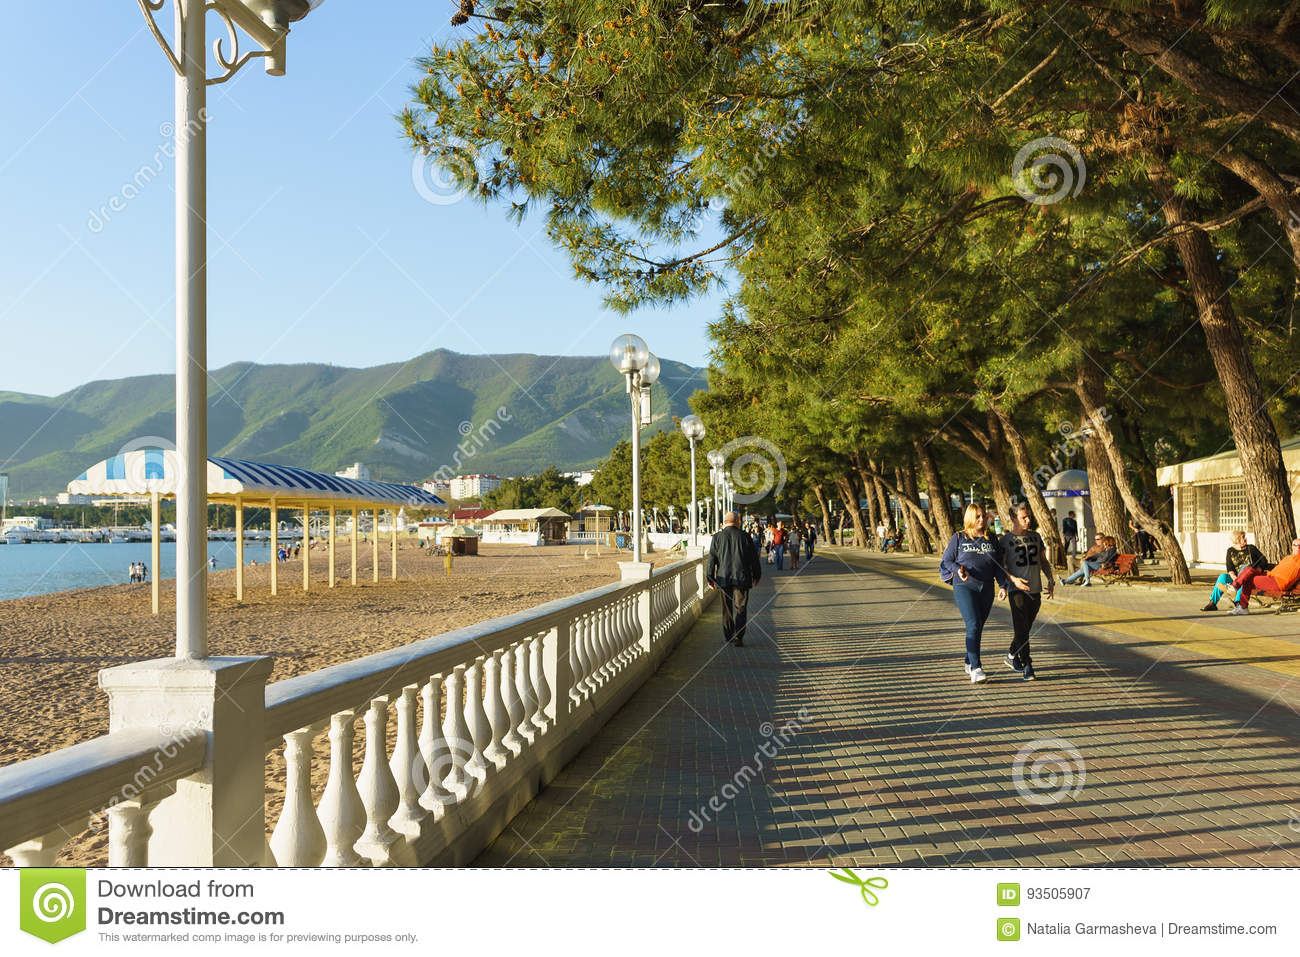 Gelendzhik Krasnodar Krai Russia April 29 2017 People Walk Along The Embankment Of Gelendzhik On The Background Of Mountains Editorial Photography Image Of Quay Promenade 93505907